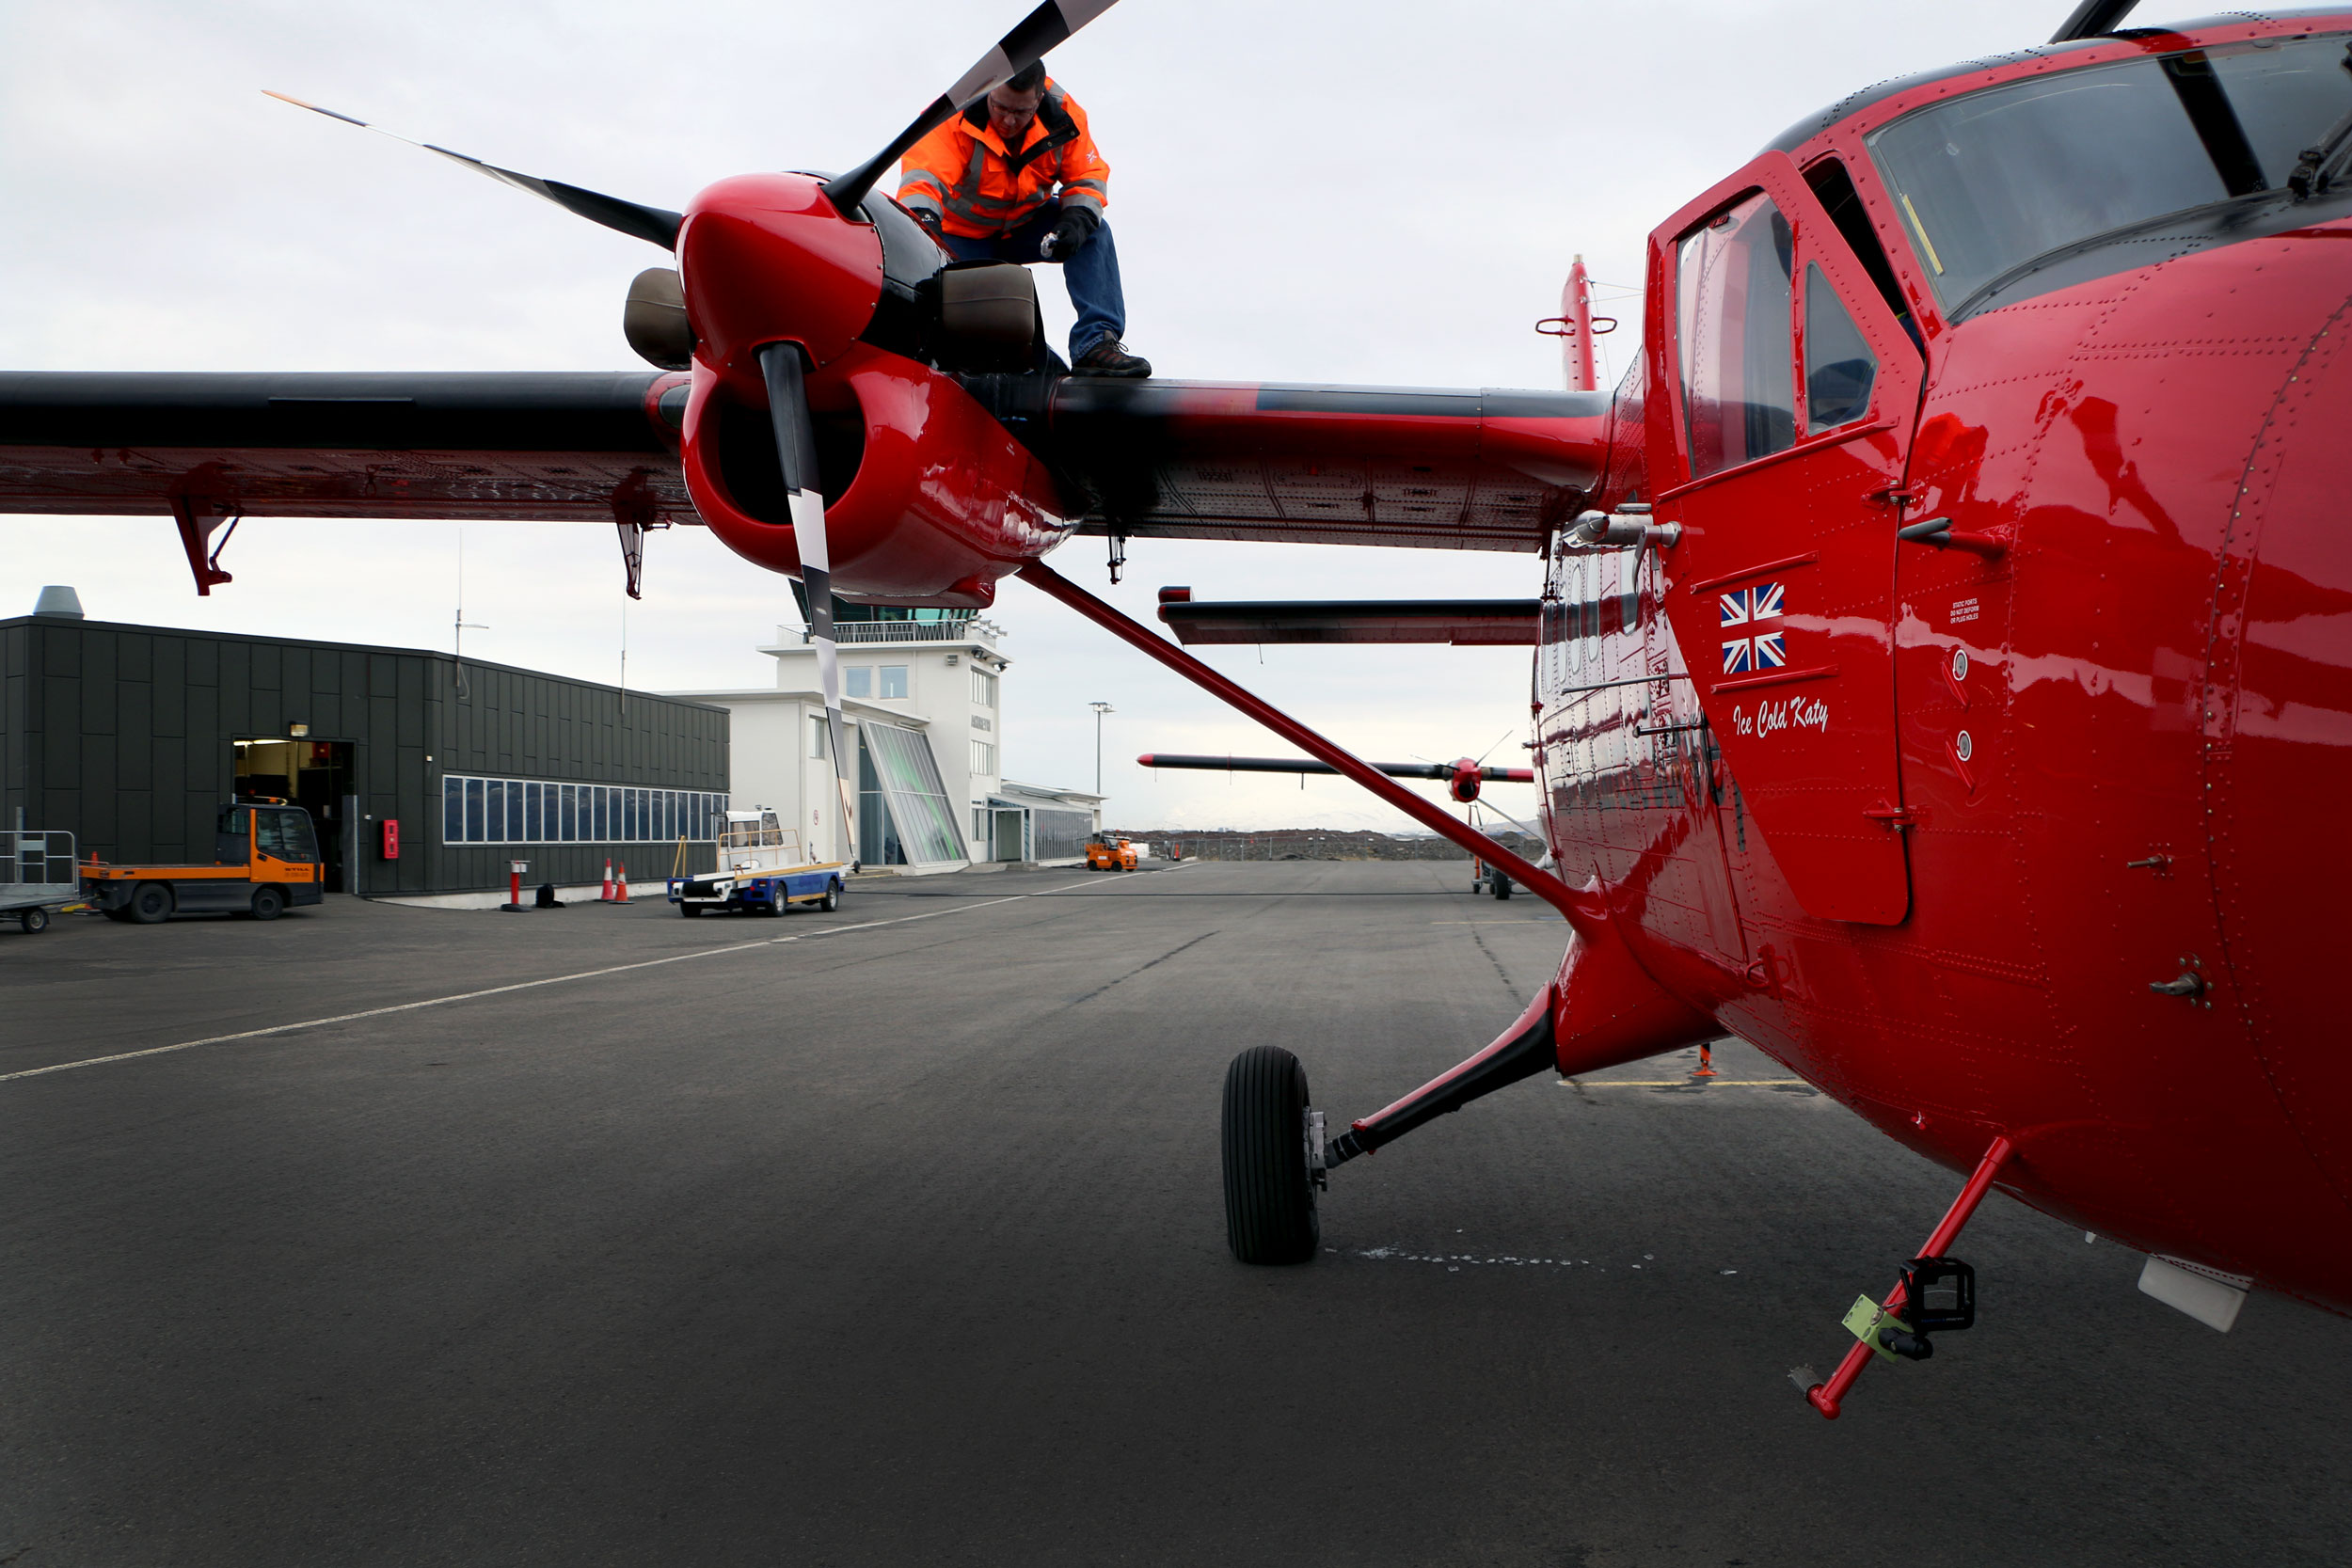 A man is perched atop a propeller of a small twin engine plane on a tarmac. The plane is bright cherry red.